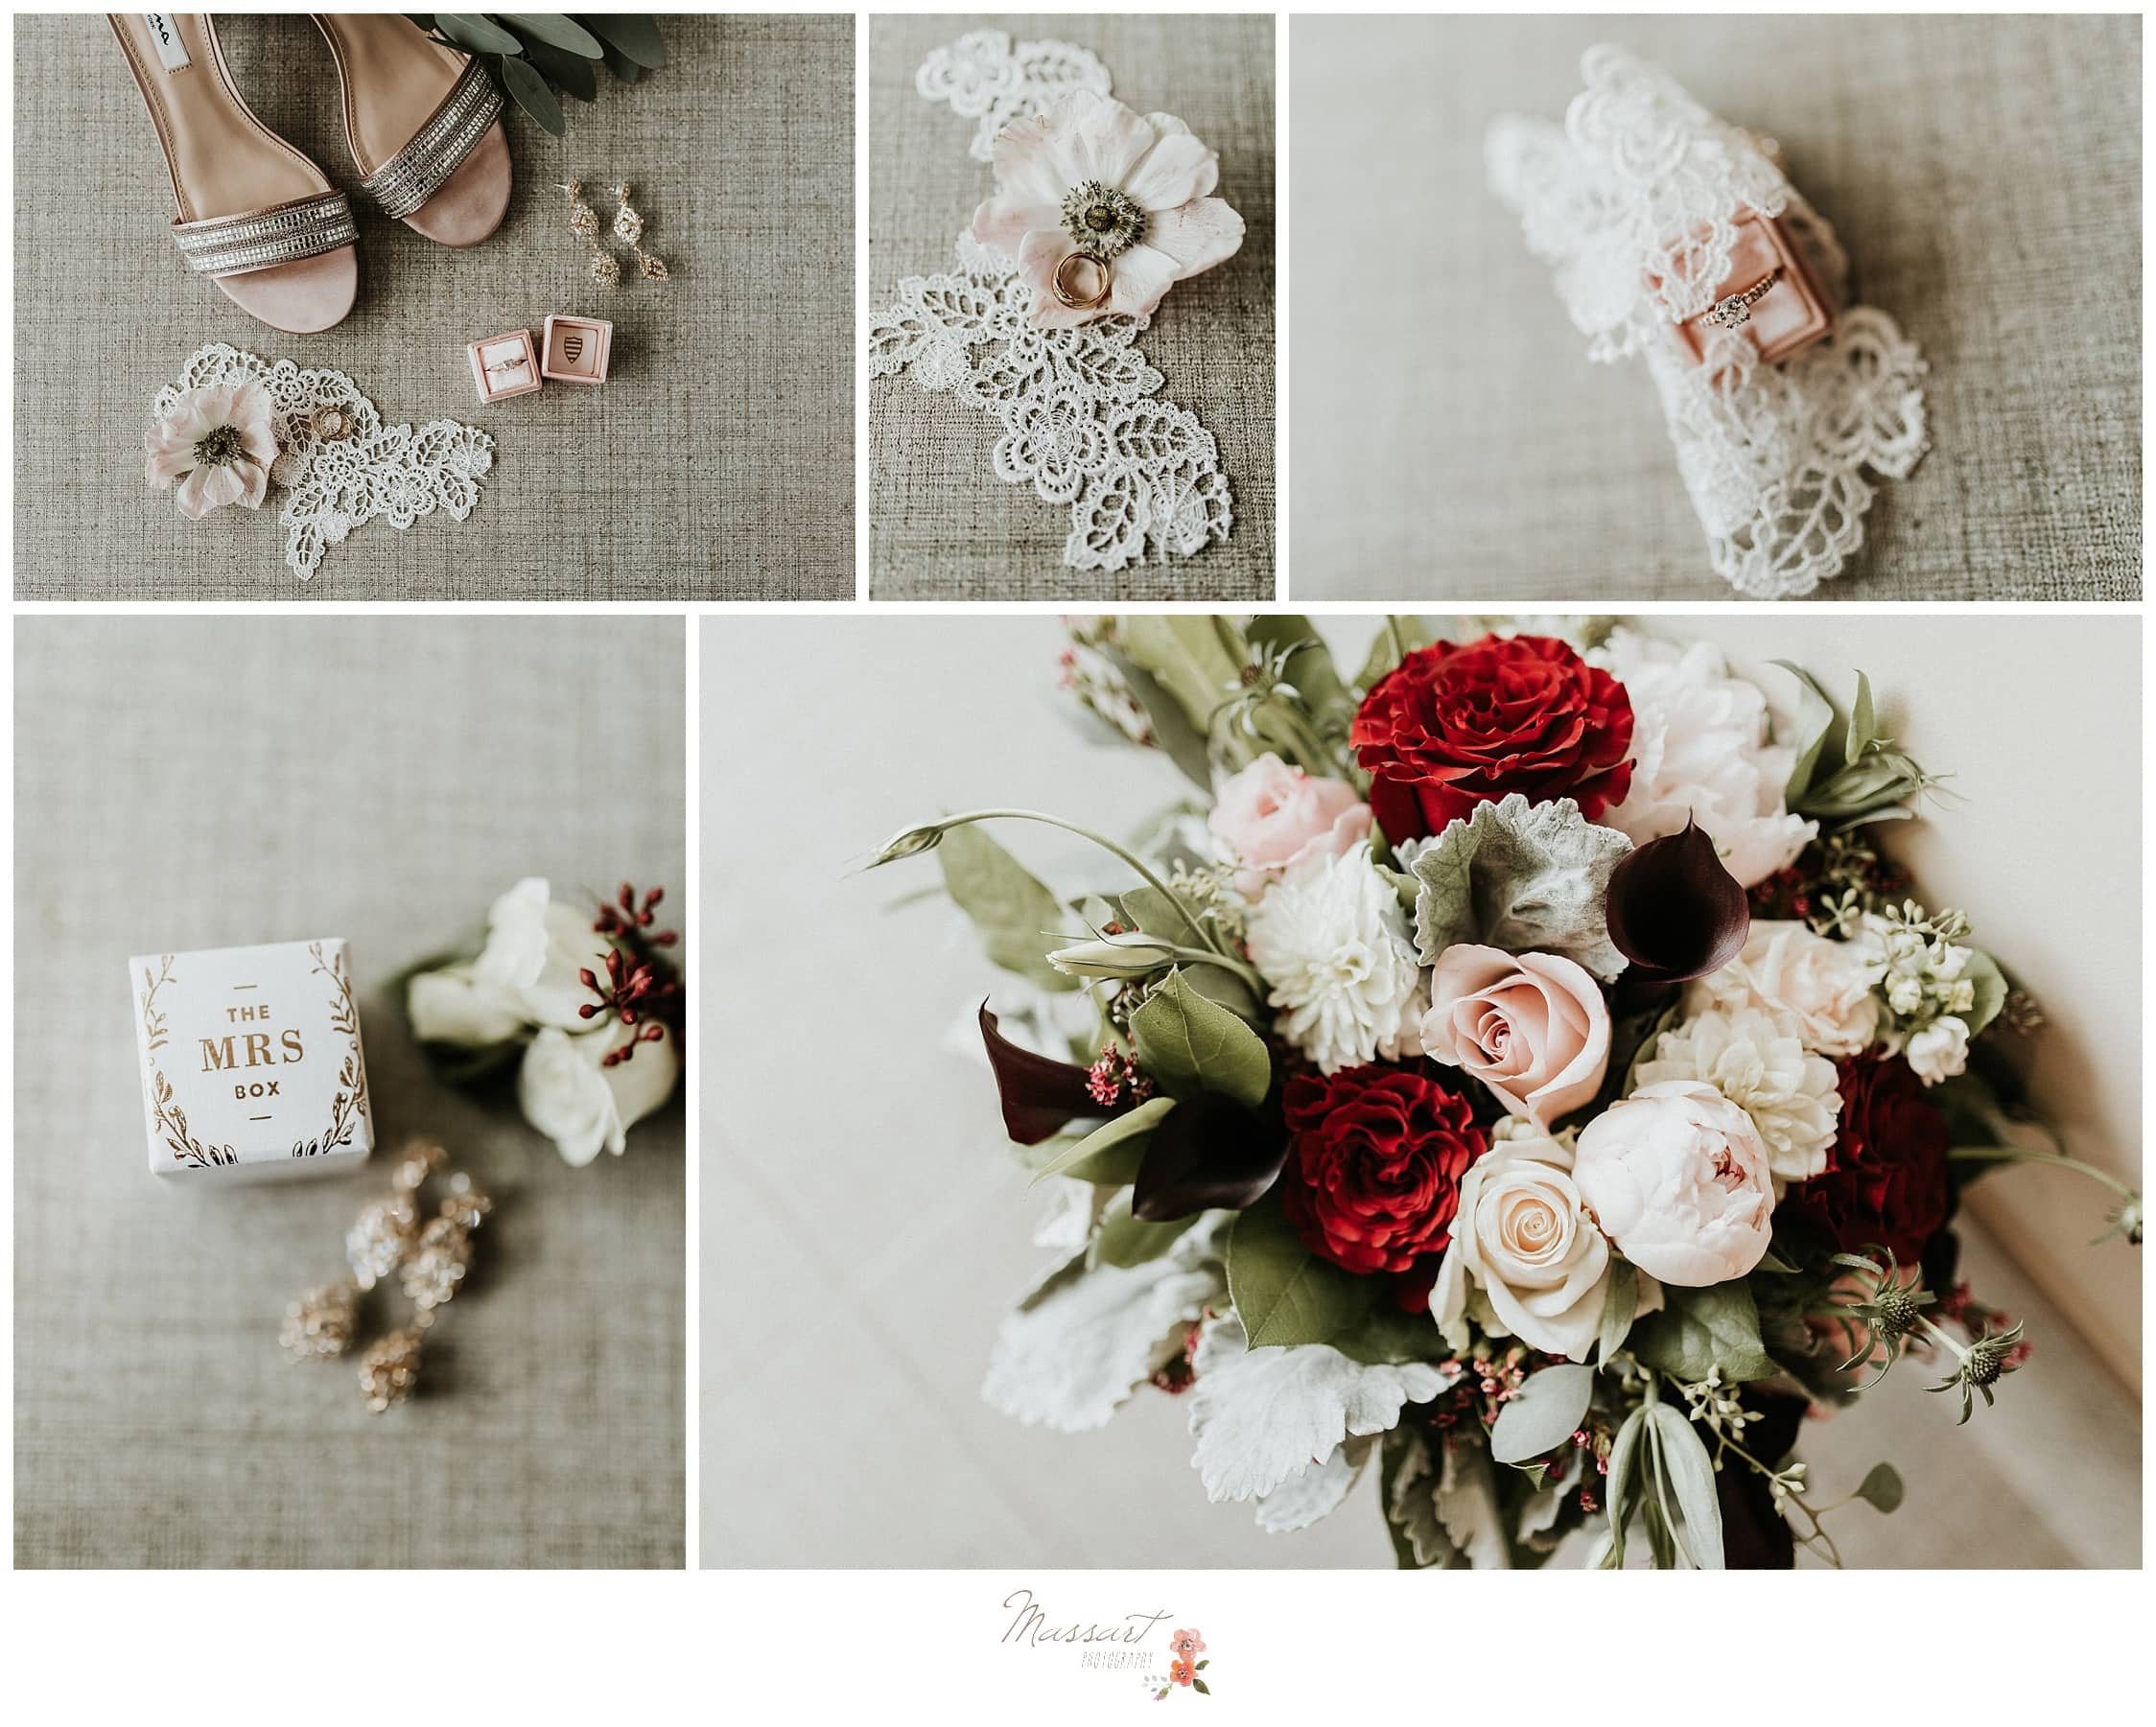 Wedding details, shoes and flowers captured by massart photographers of warwick rhode island